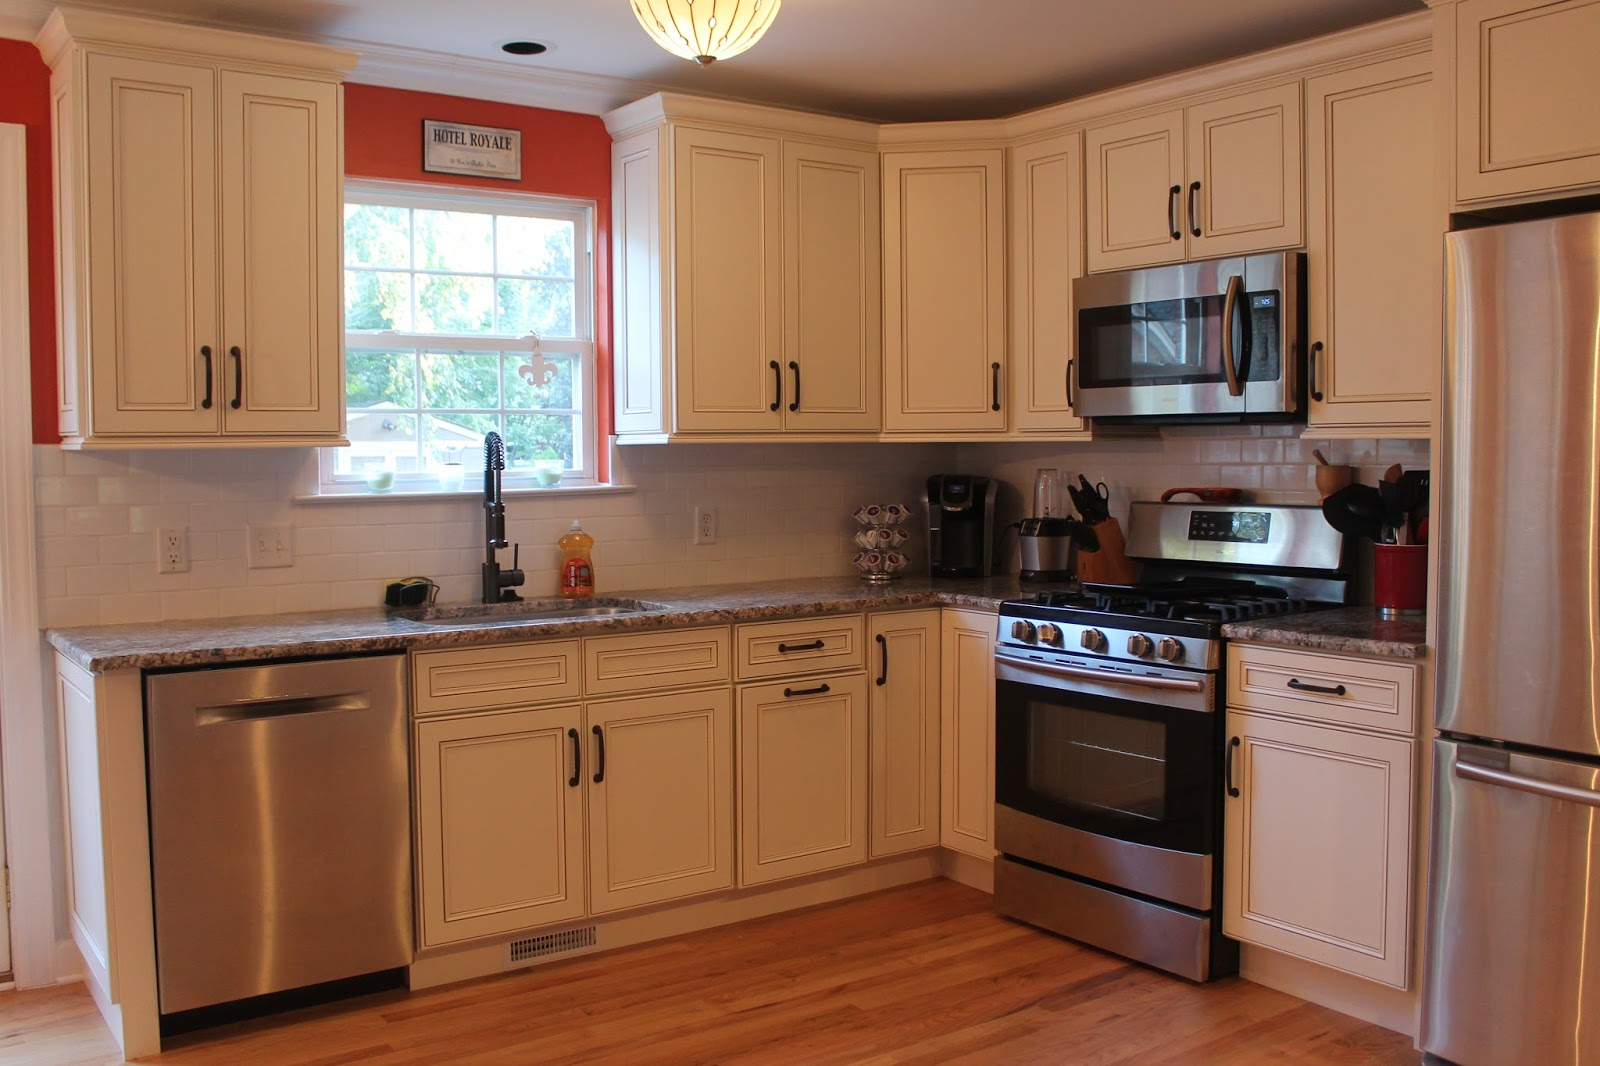 Universal Design Kitchen Cabinets The Facts On Kitchen Cabinets For Wheelchair Standard Vs